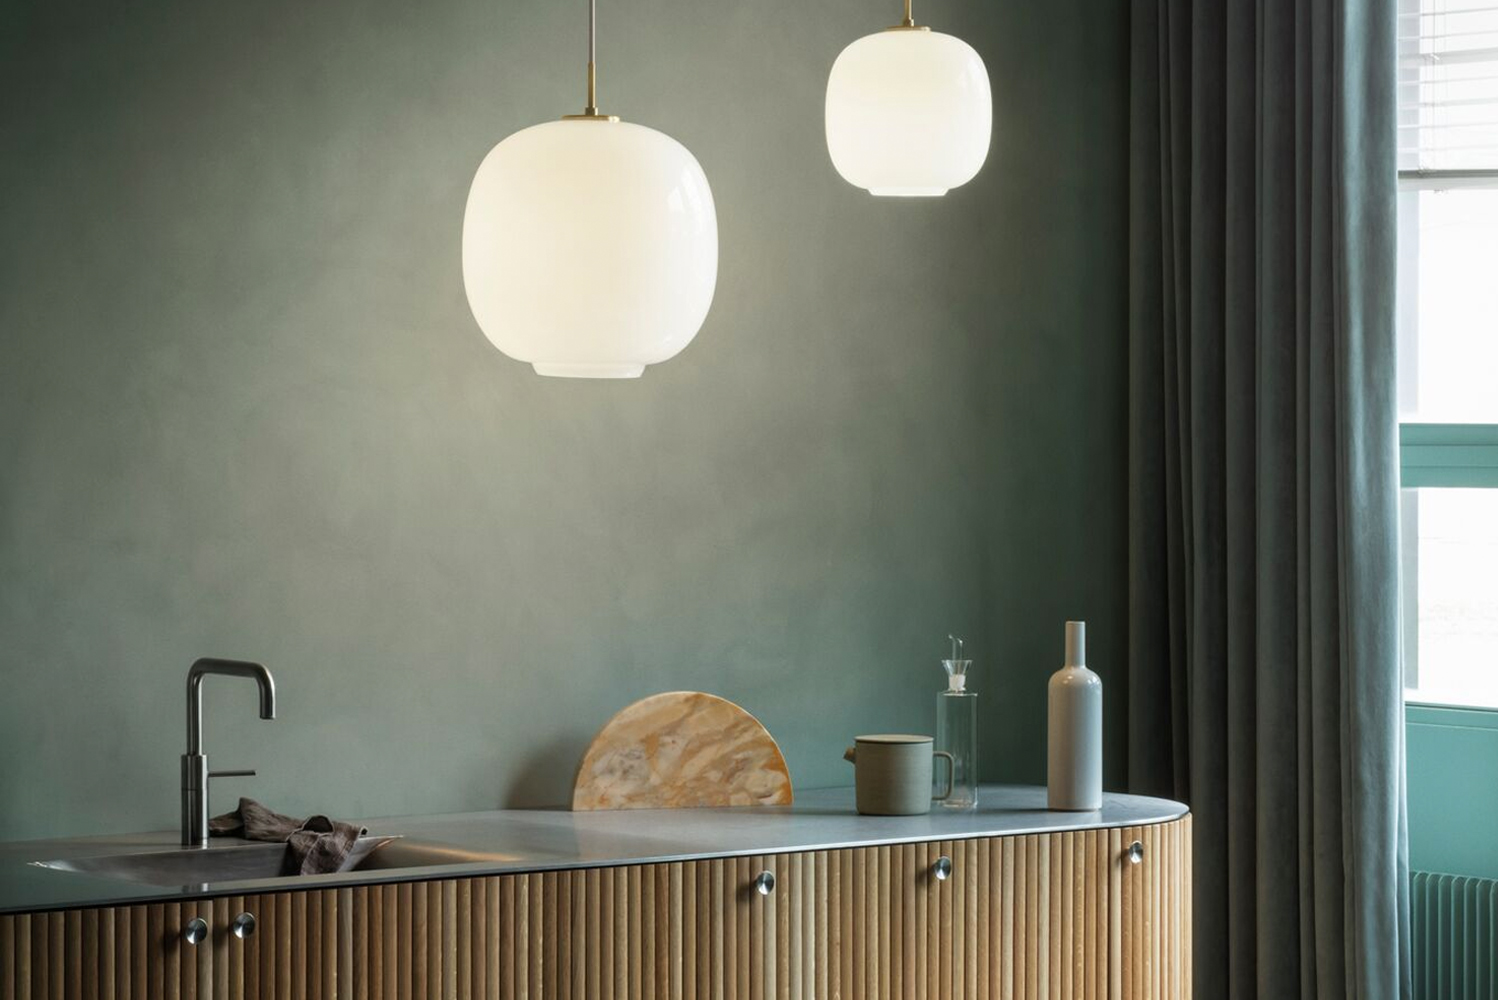 LED technology was integrated into PH Snowball, VL45 and Patera, among other pendants in the same size category.